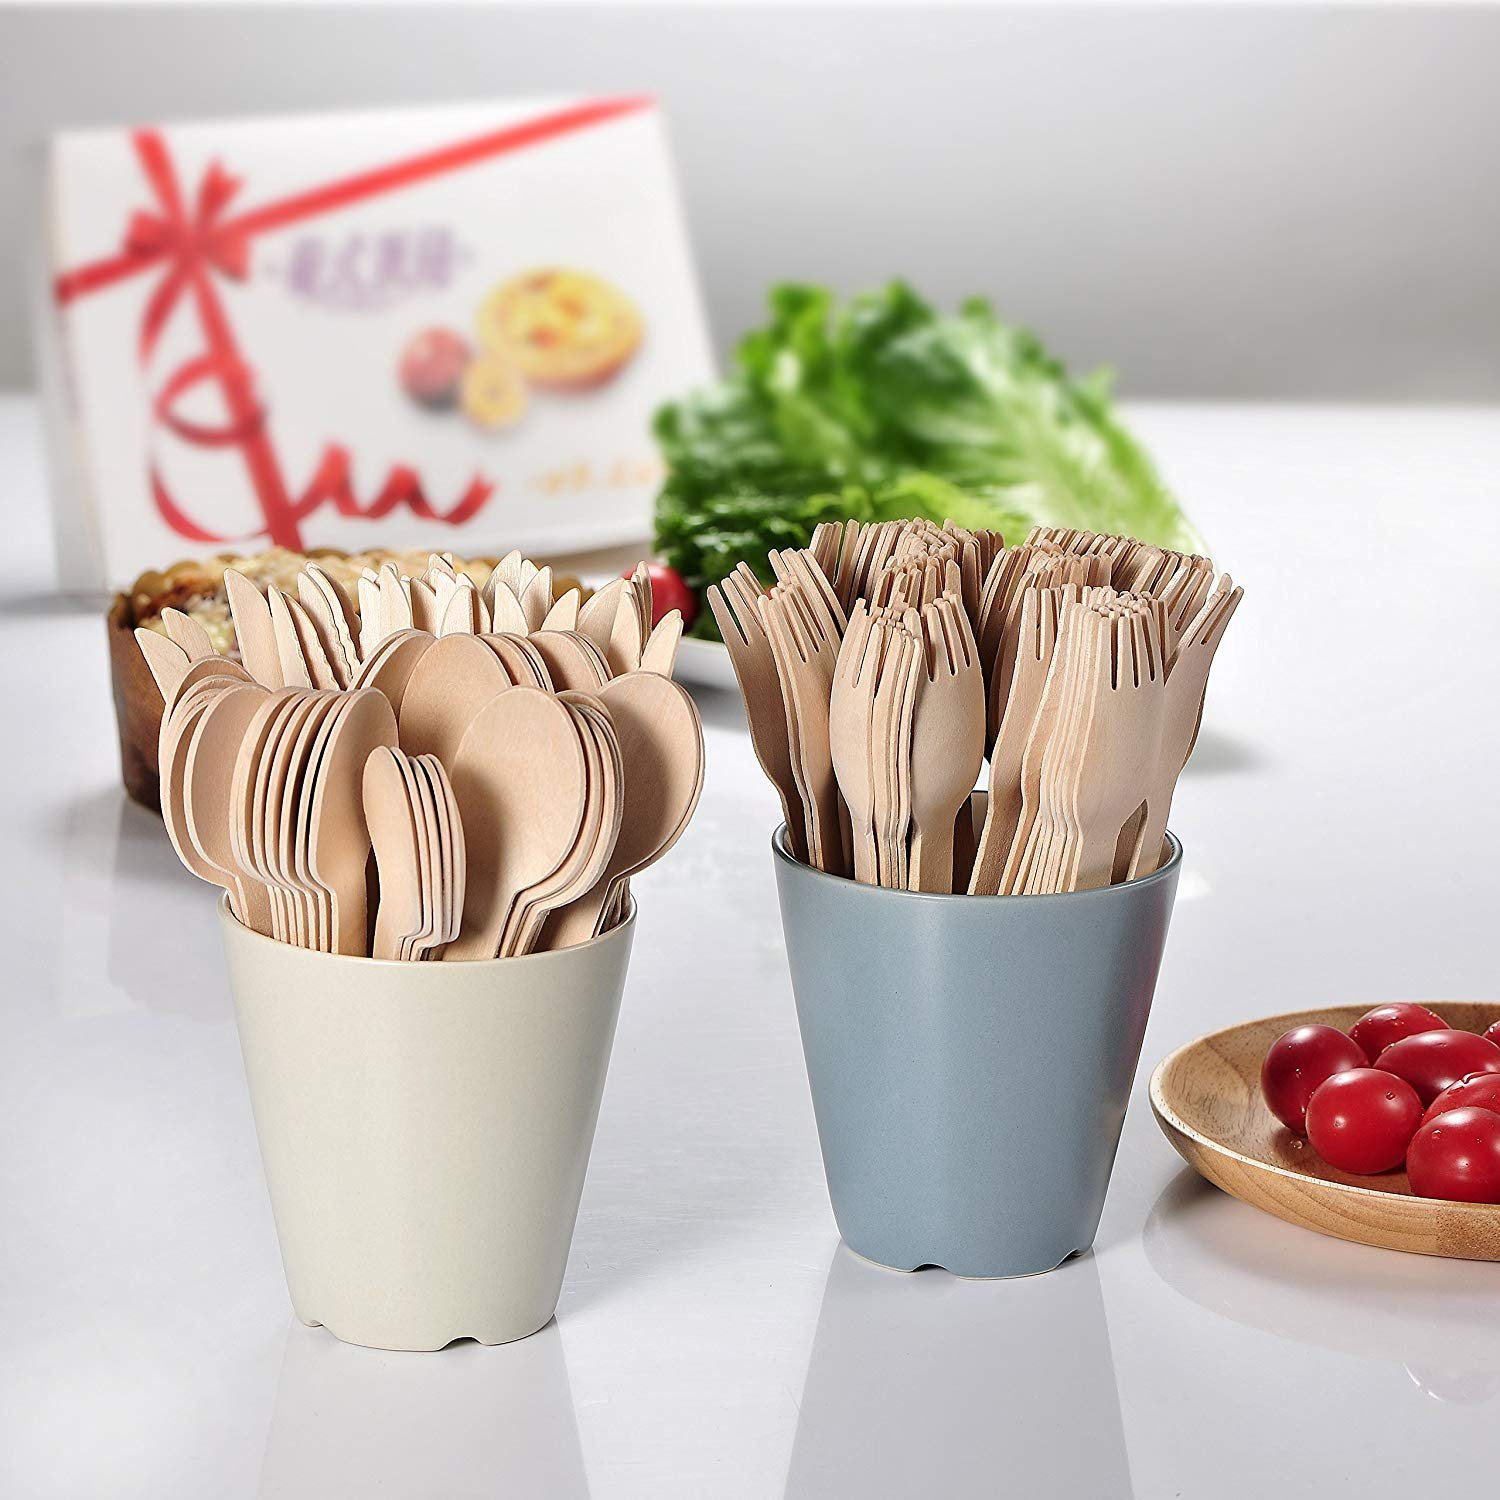 Wood set cutlery biodegradable-disposable-eco friendly-100 wooden forks-100 knives-100 spoons-For Parties, Picnics, Events & Weddings – Durable & Environmentally Safe by OFO WOOD (Image #4)